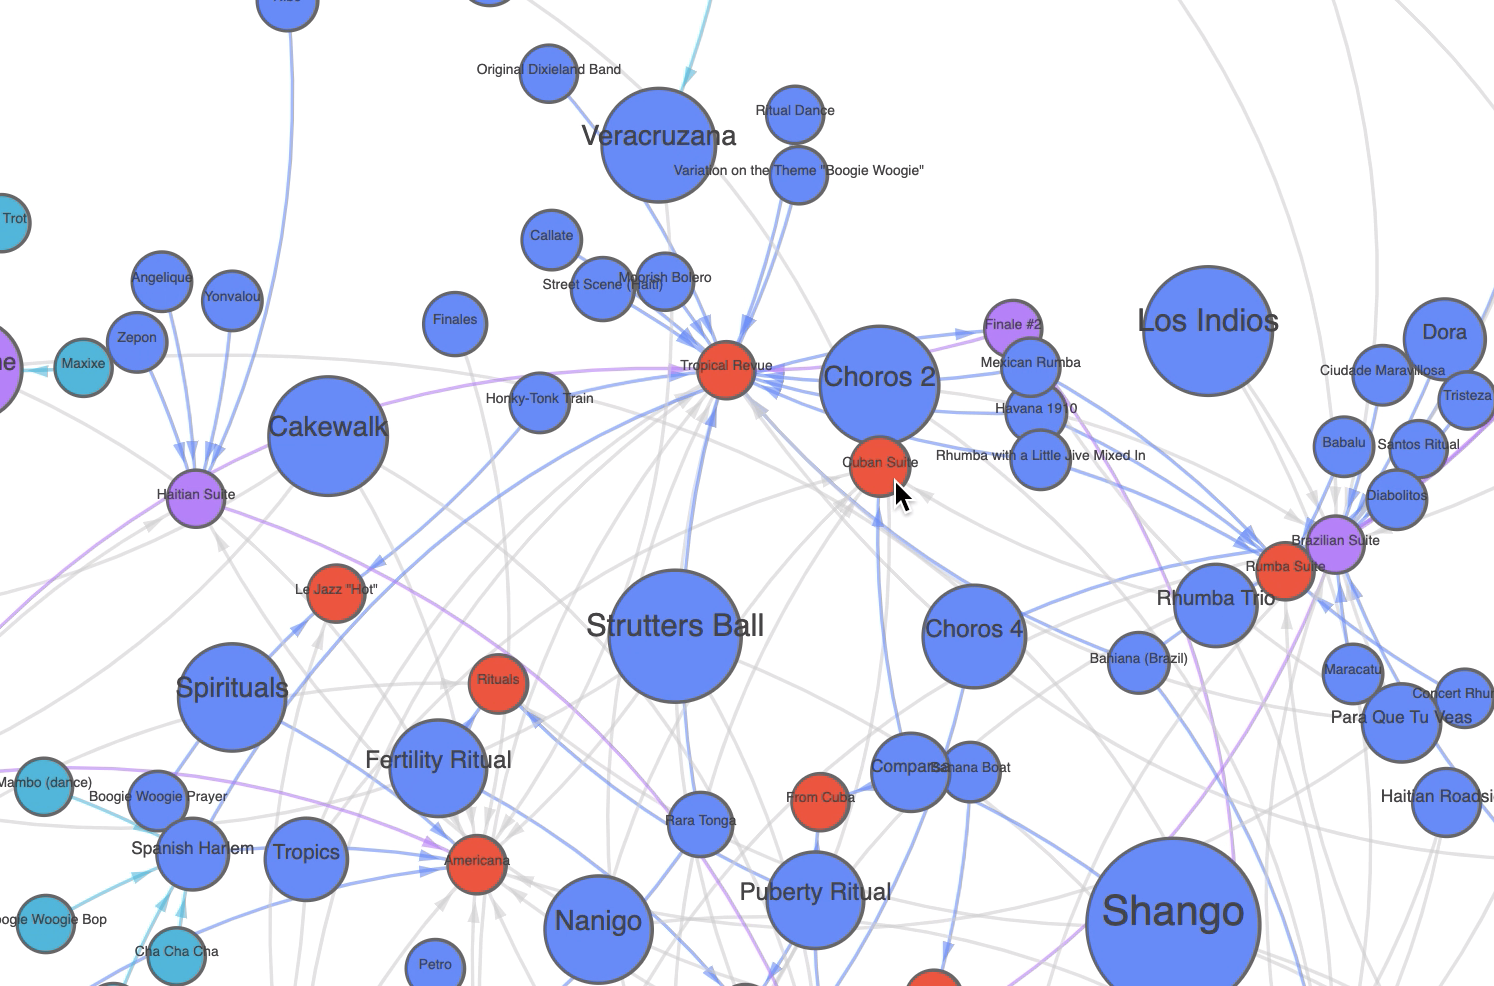 Screen Grab from Interactive Repertory Network Diagram